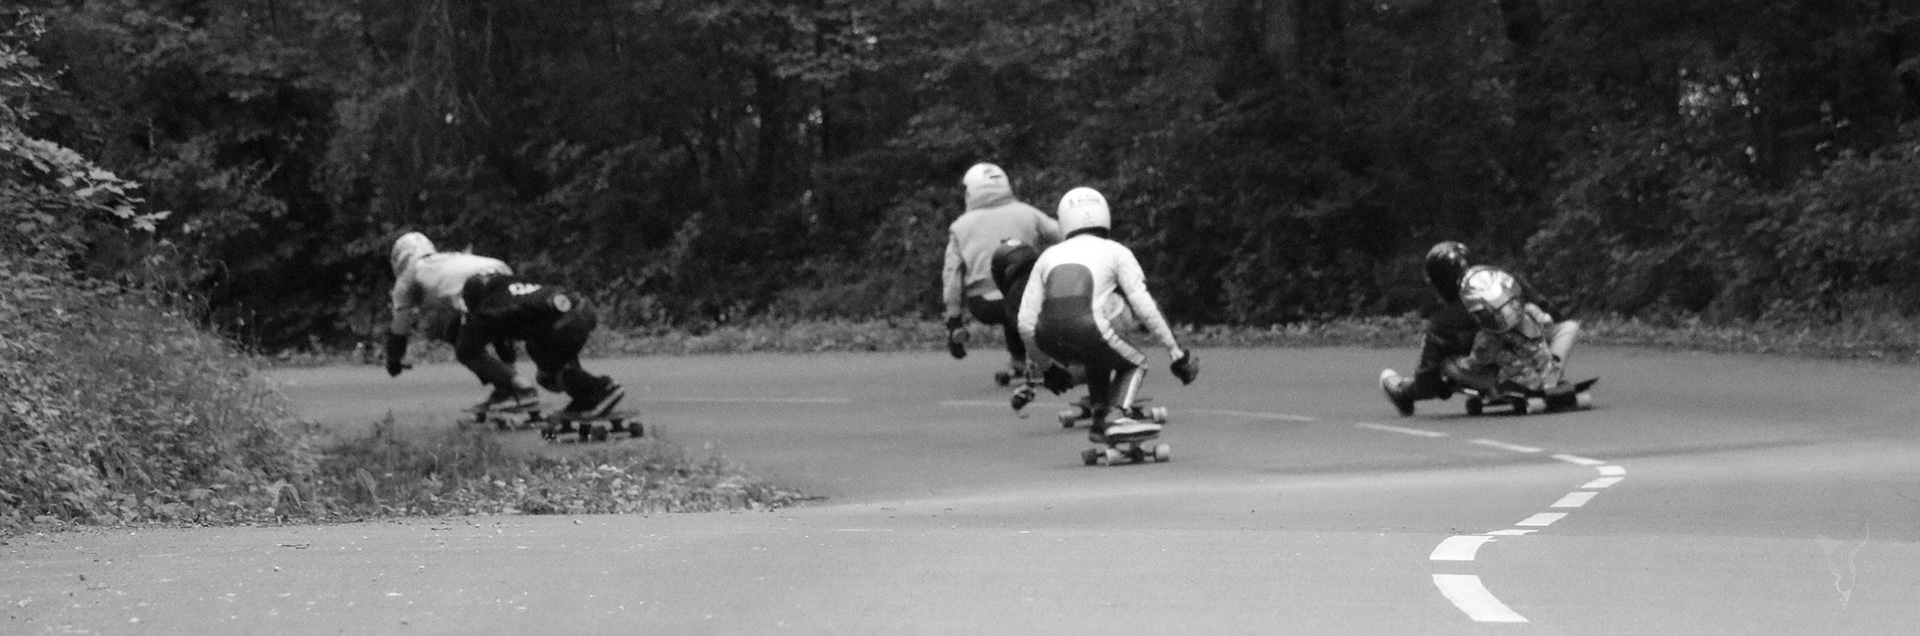 ALT_longboard_photo_09